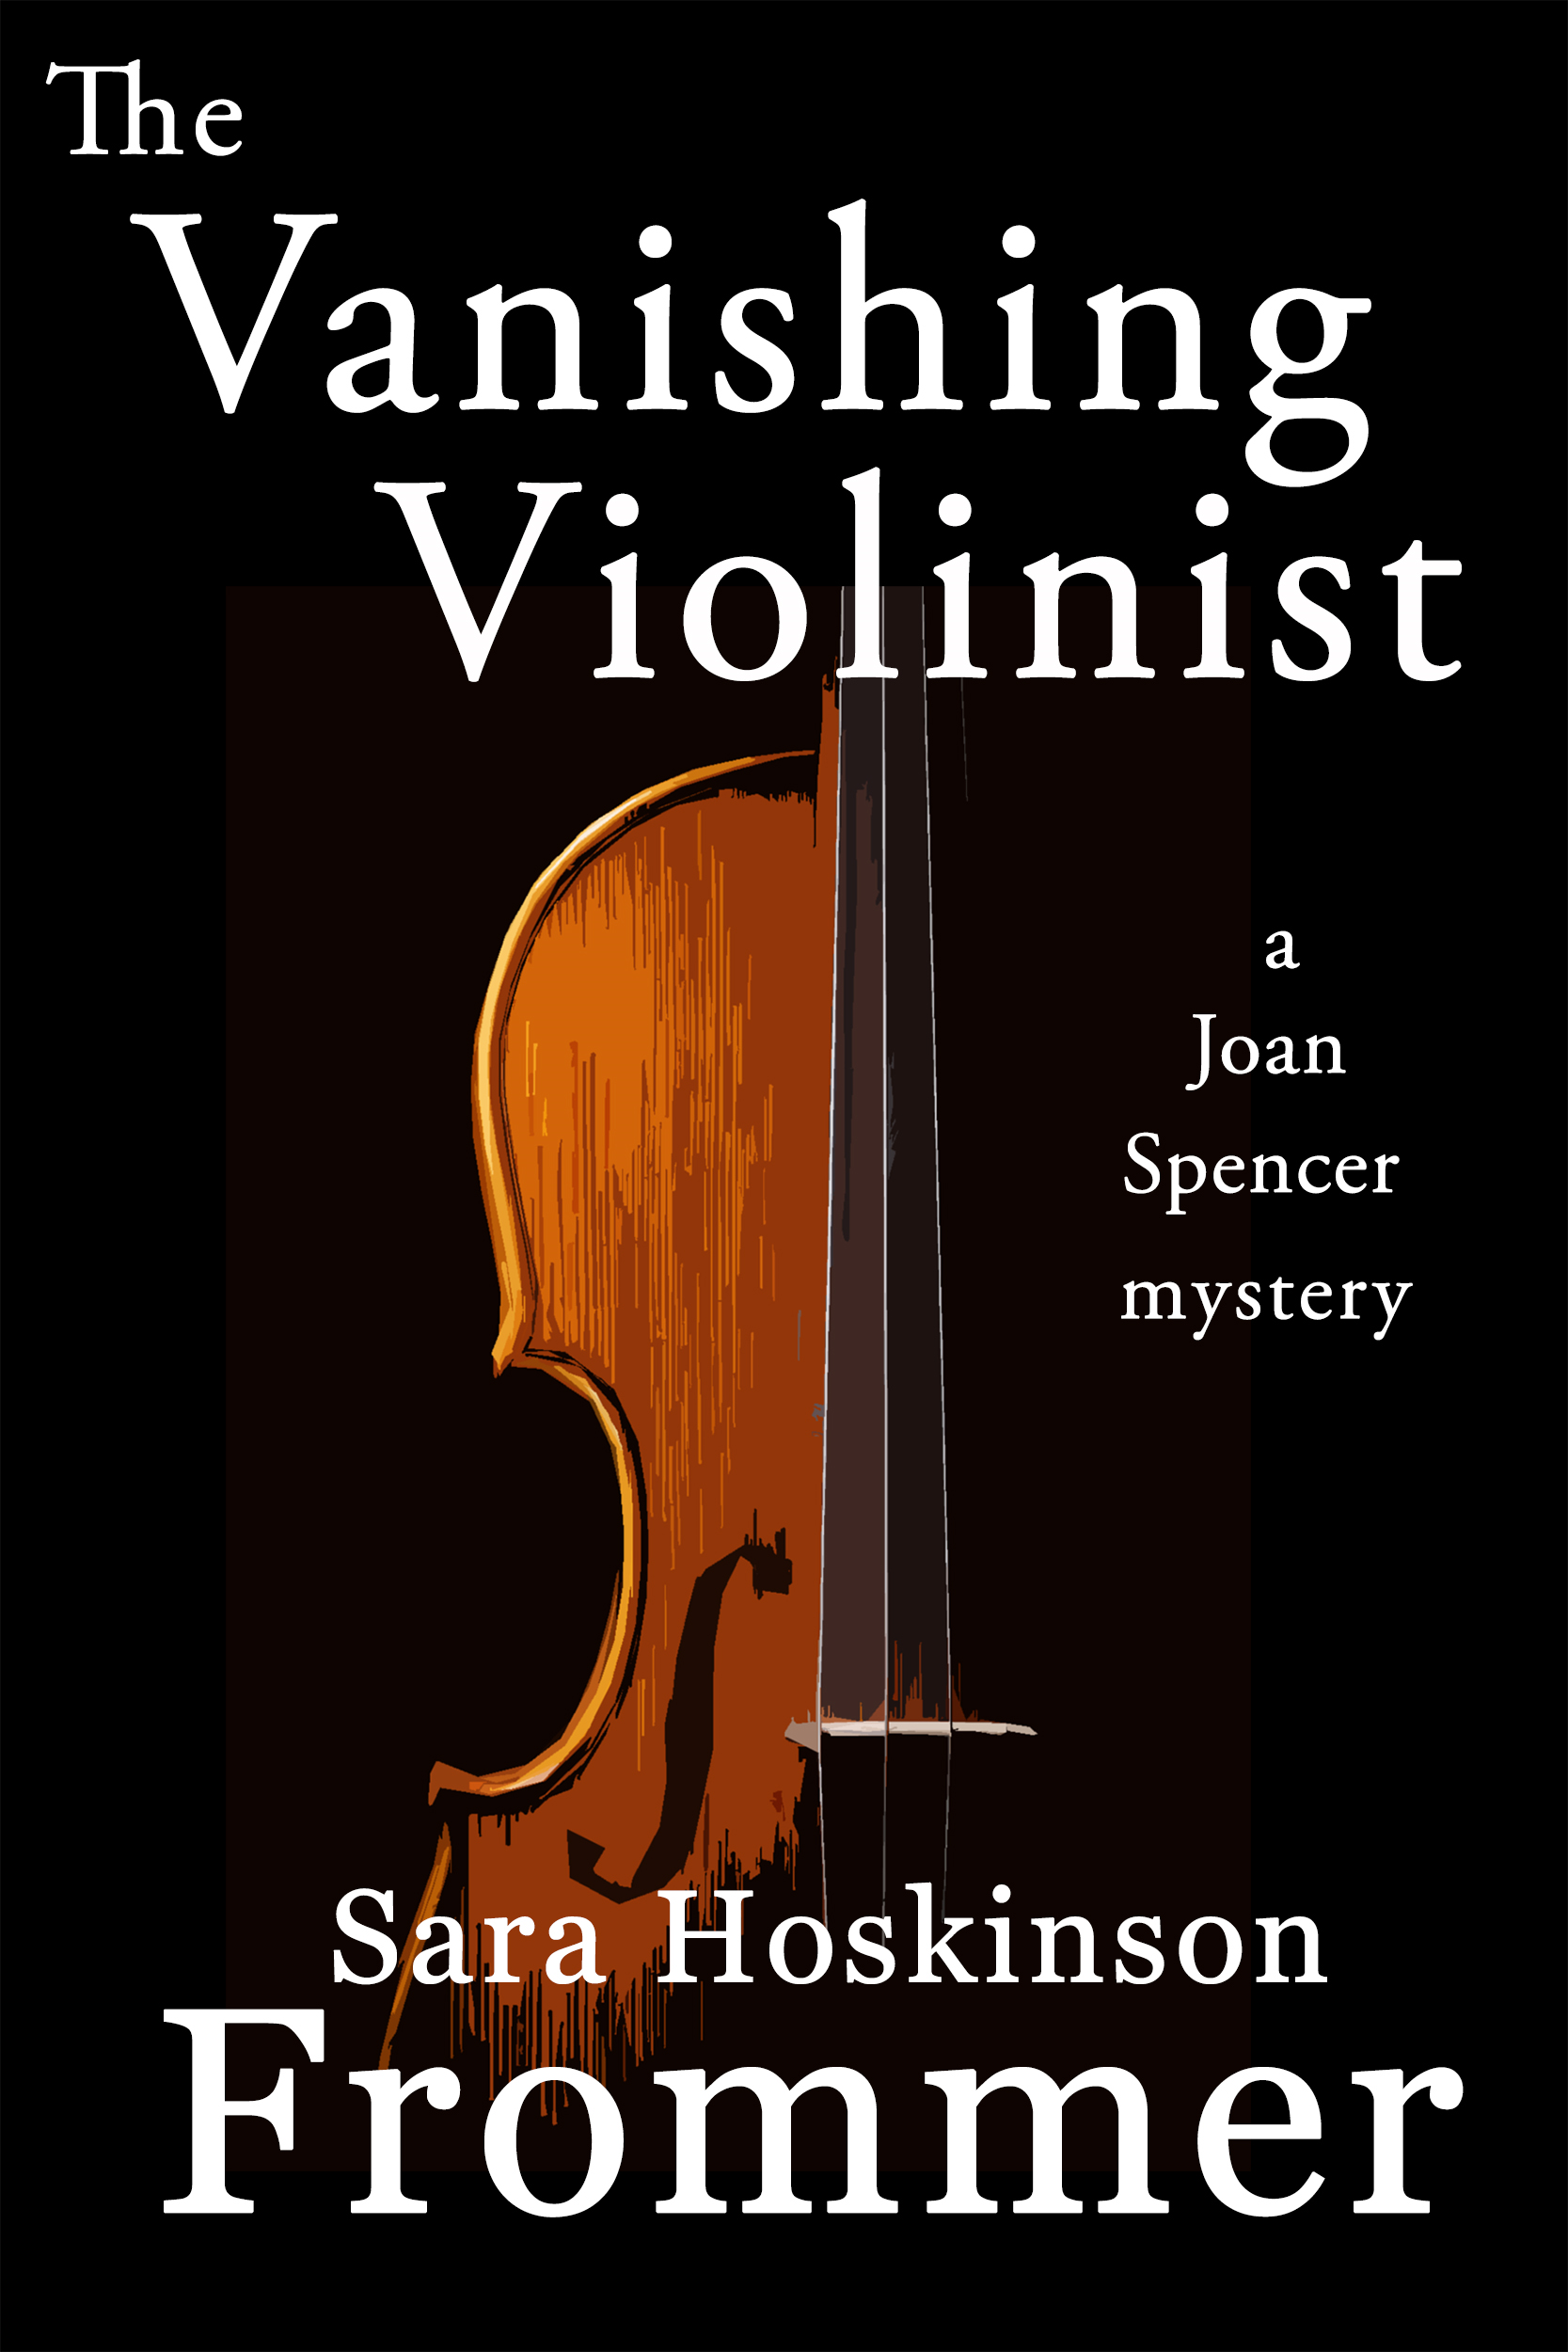 The Vanishing Violinist